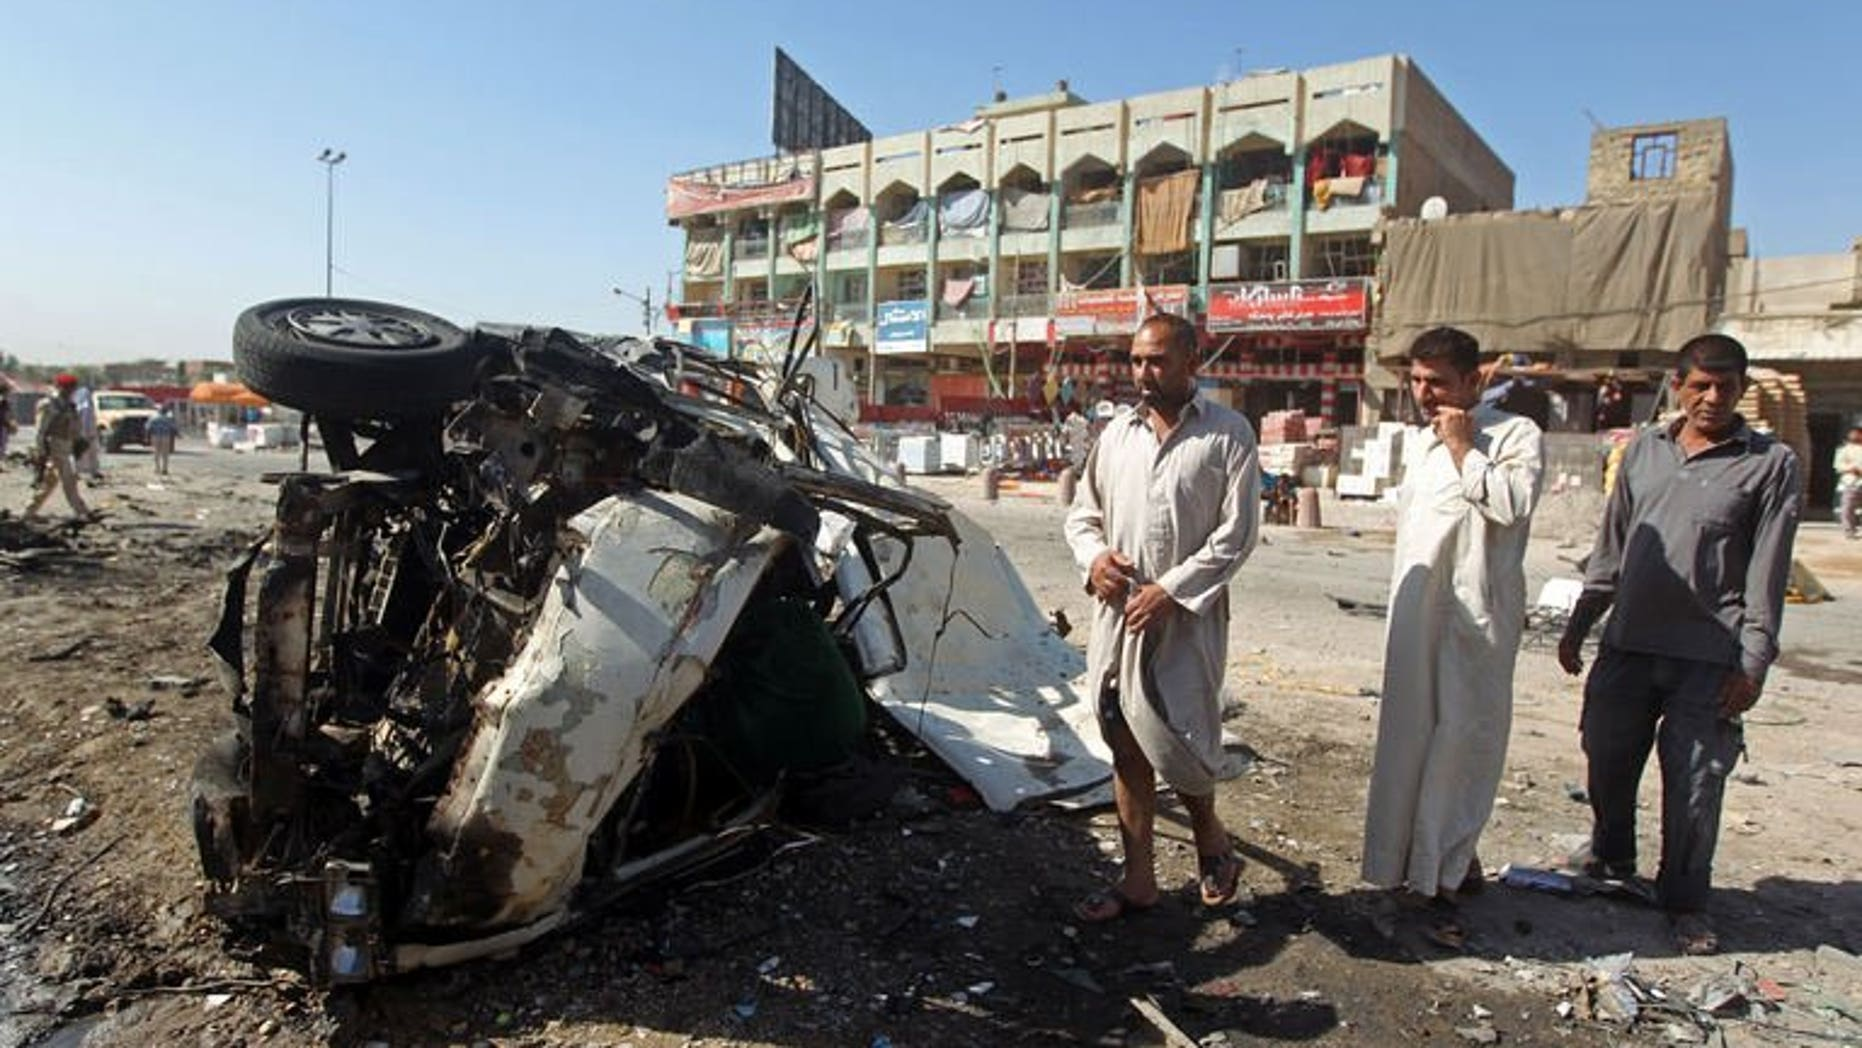 July 29, 2013 shows Iraqis inspecting the site of a car bomb explosion in the impoverished district of Sadr City in Baghdad. A series of apparently coordinated bombings struck Baghdad on Tuesday, killing 12 people, while five others died in violence elsewhere in Iraq, officials said.